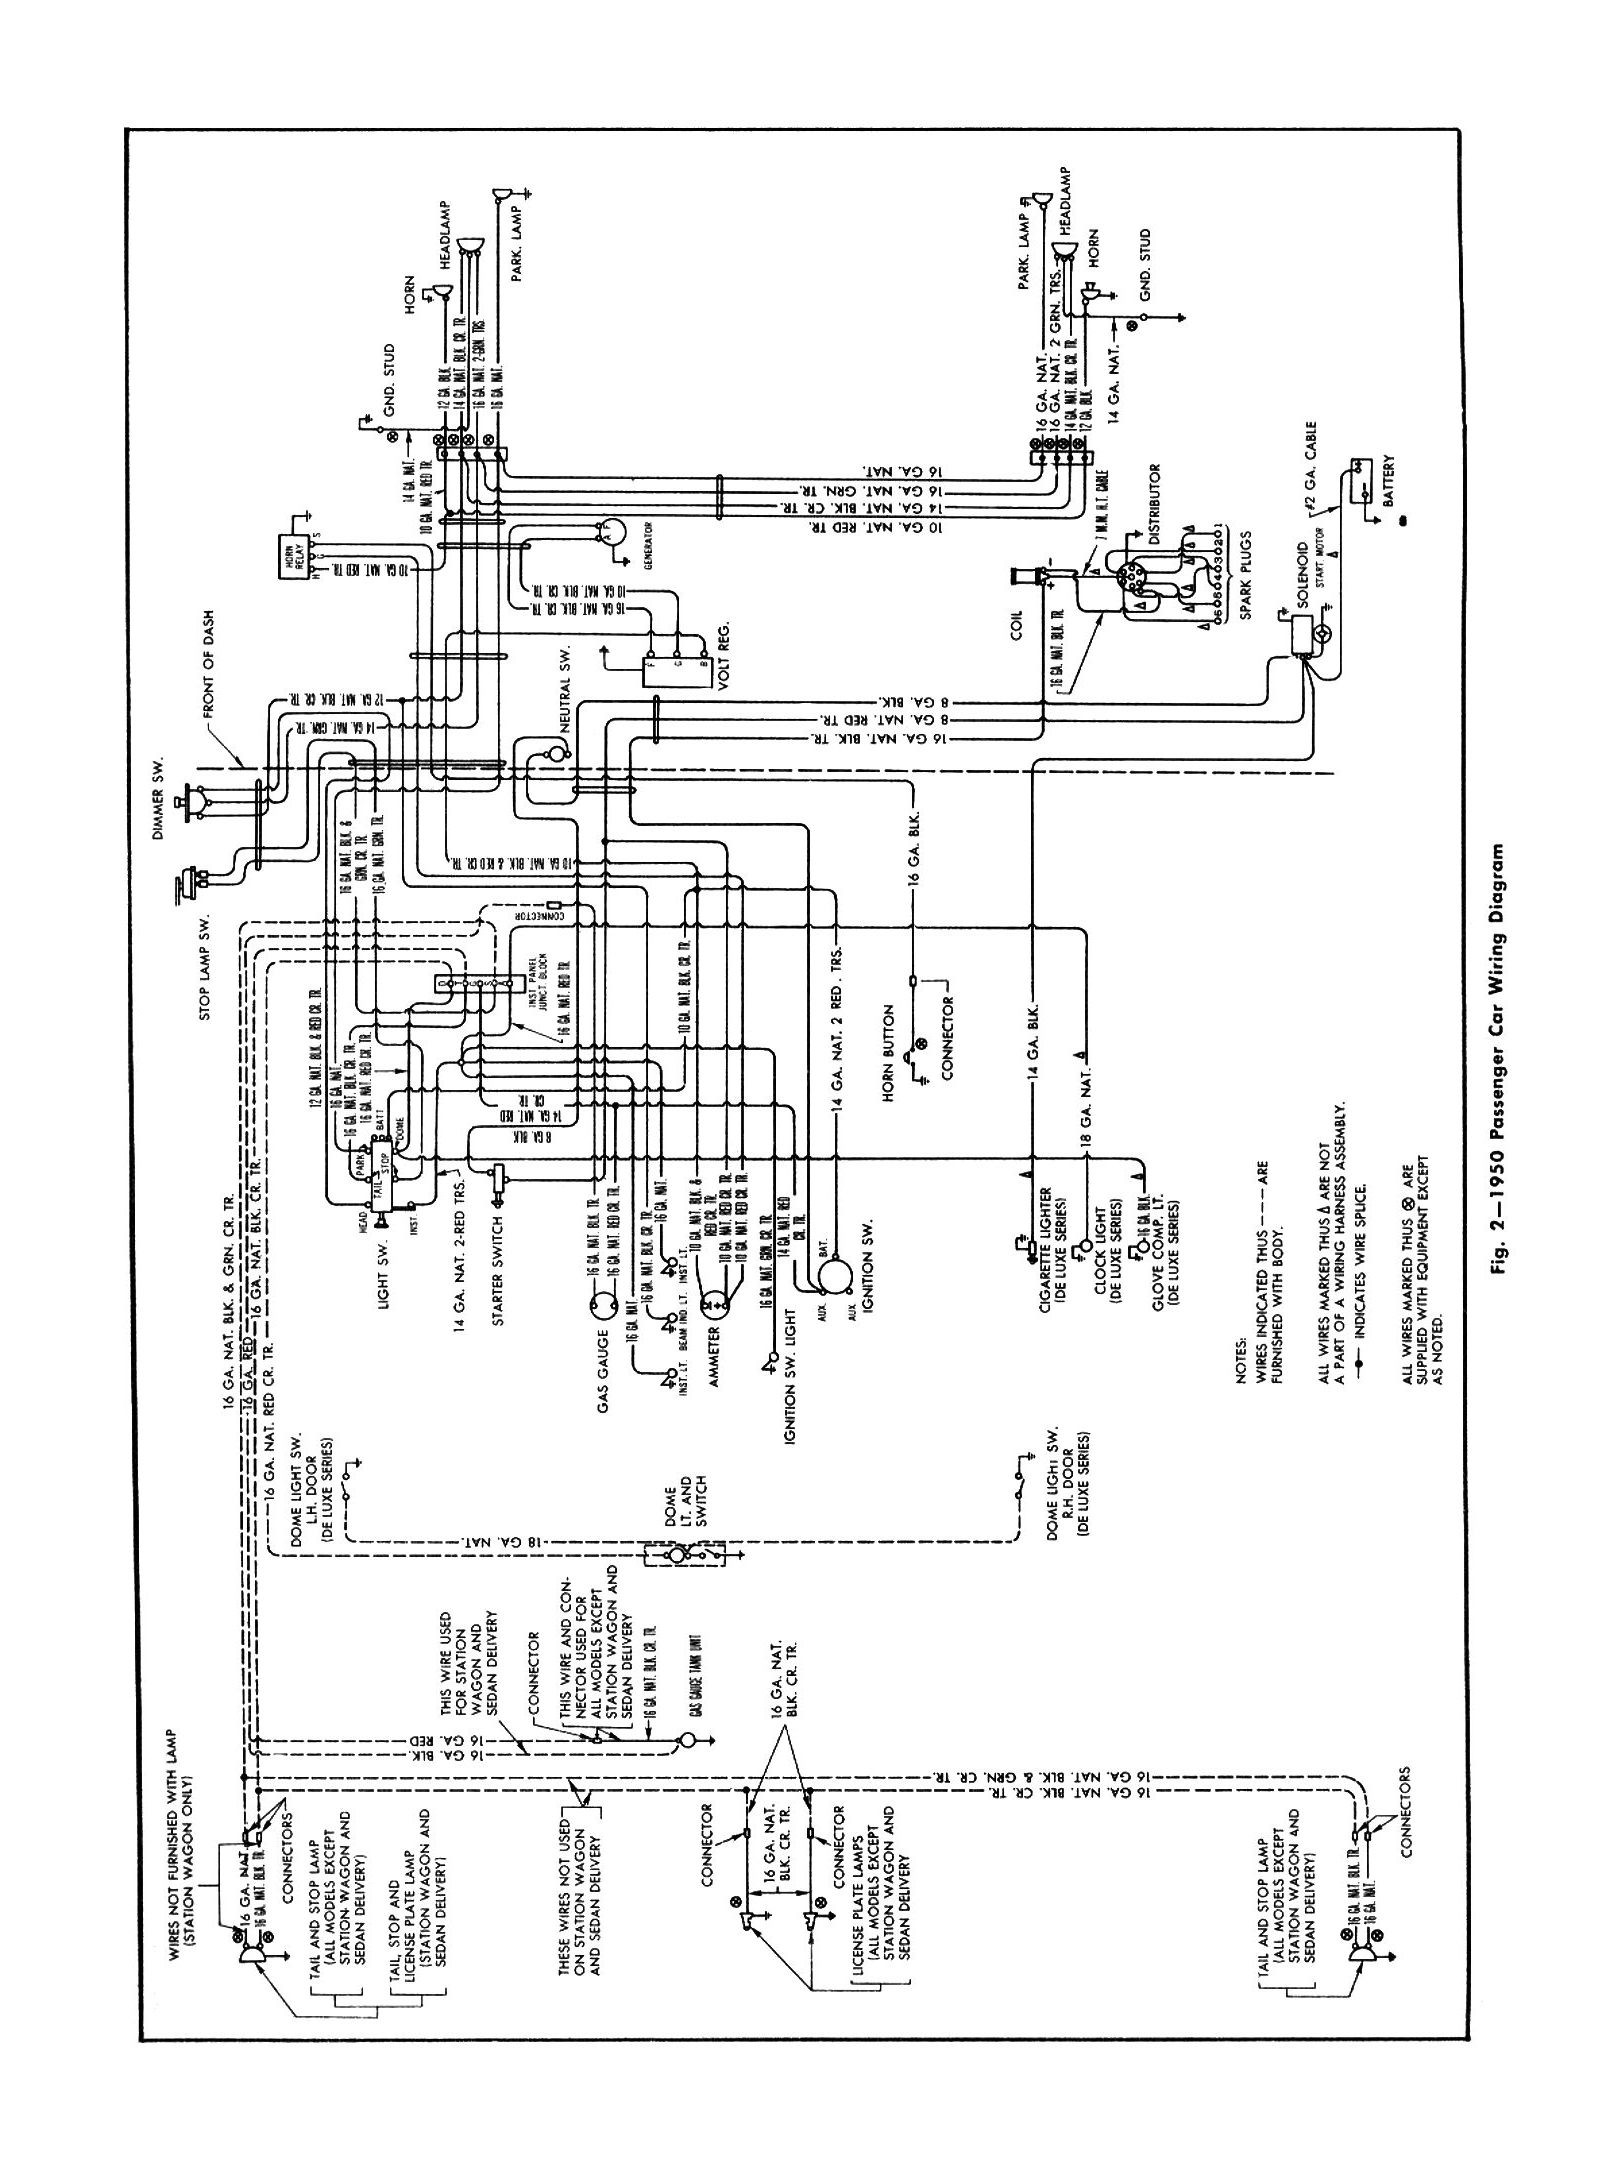 50car chevy wiring diagrams 1953 chevy bel air wiring diagram at readyjetset.co